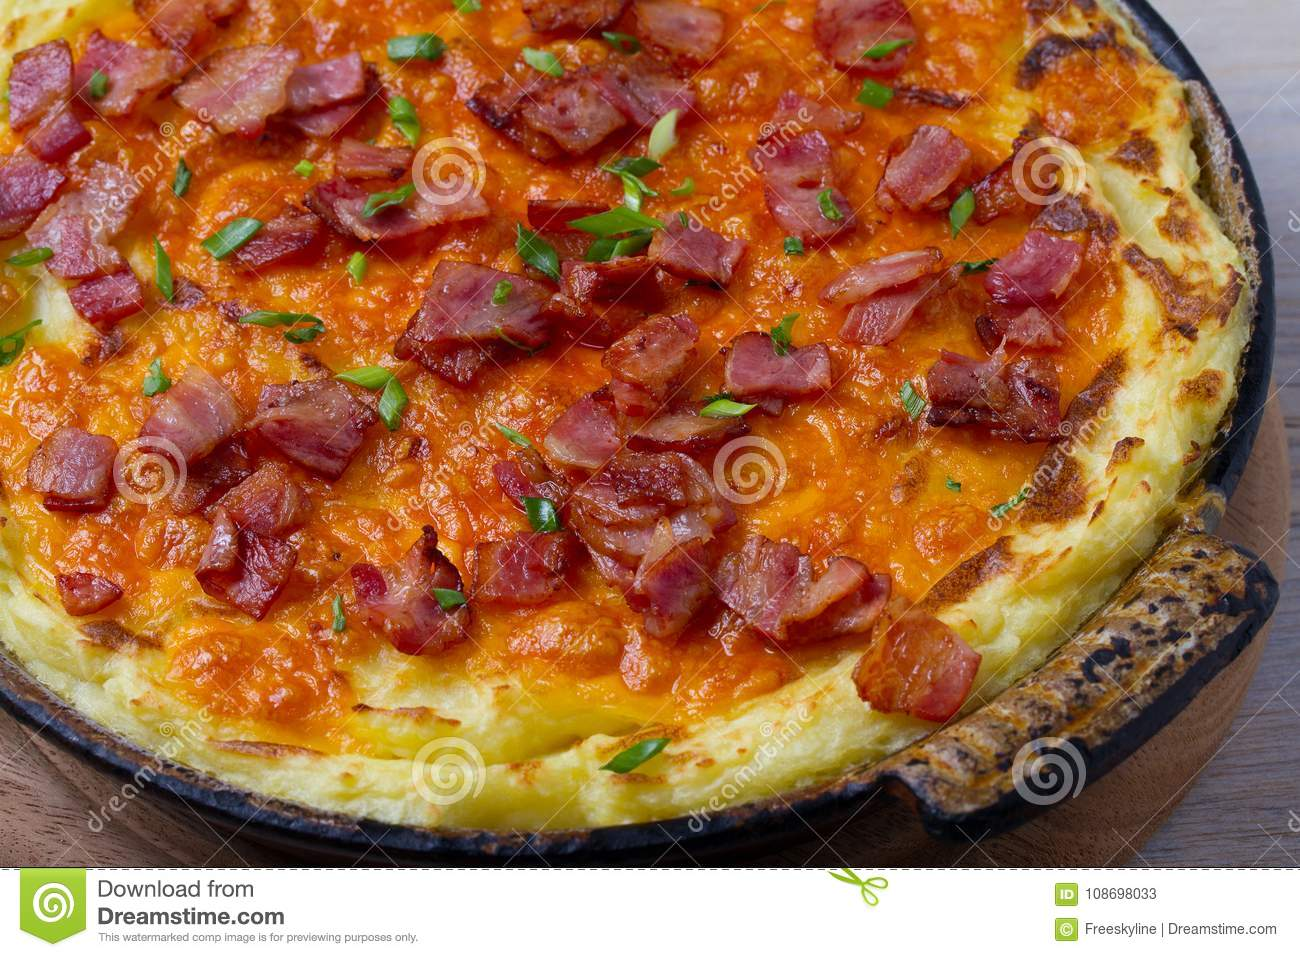 Cheddar Mashed Potato Casserole with Bacon. Baked Cheddar Potato Casserole.